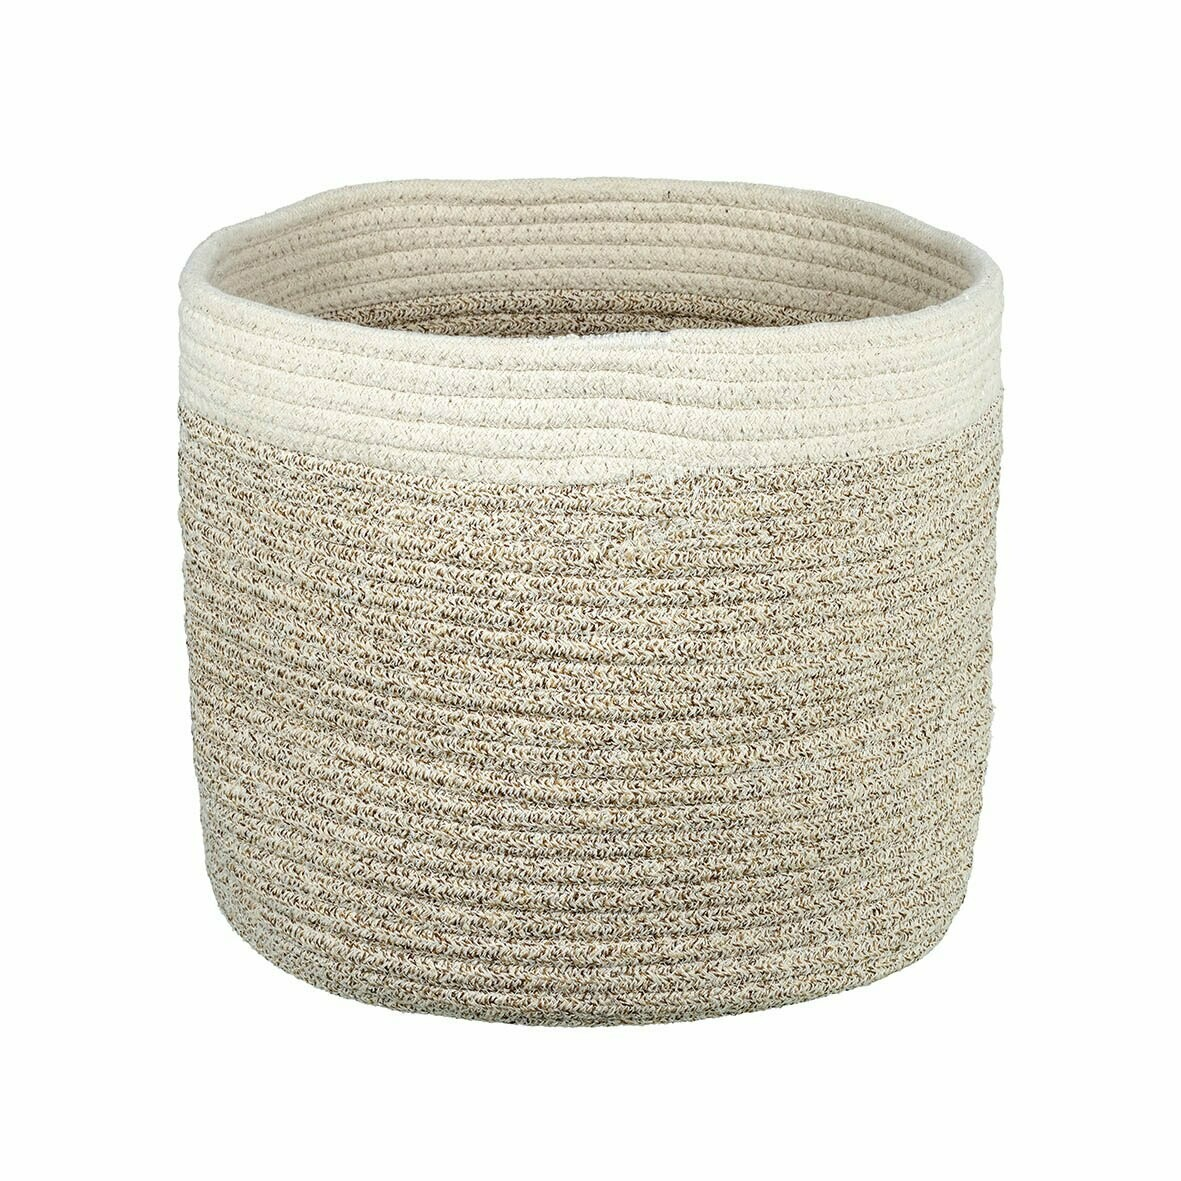 Taupe and Cream Storage Basket - Large